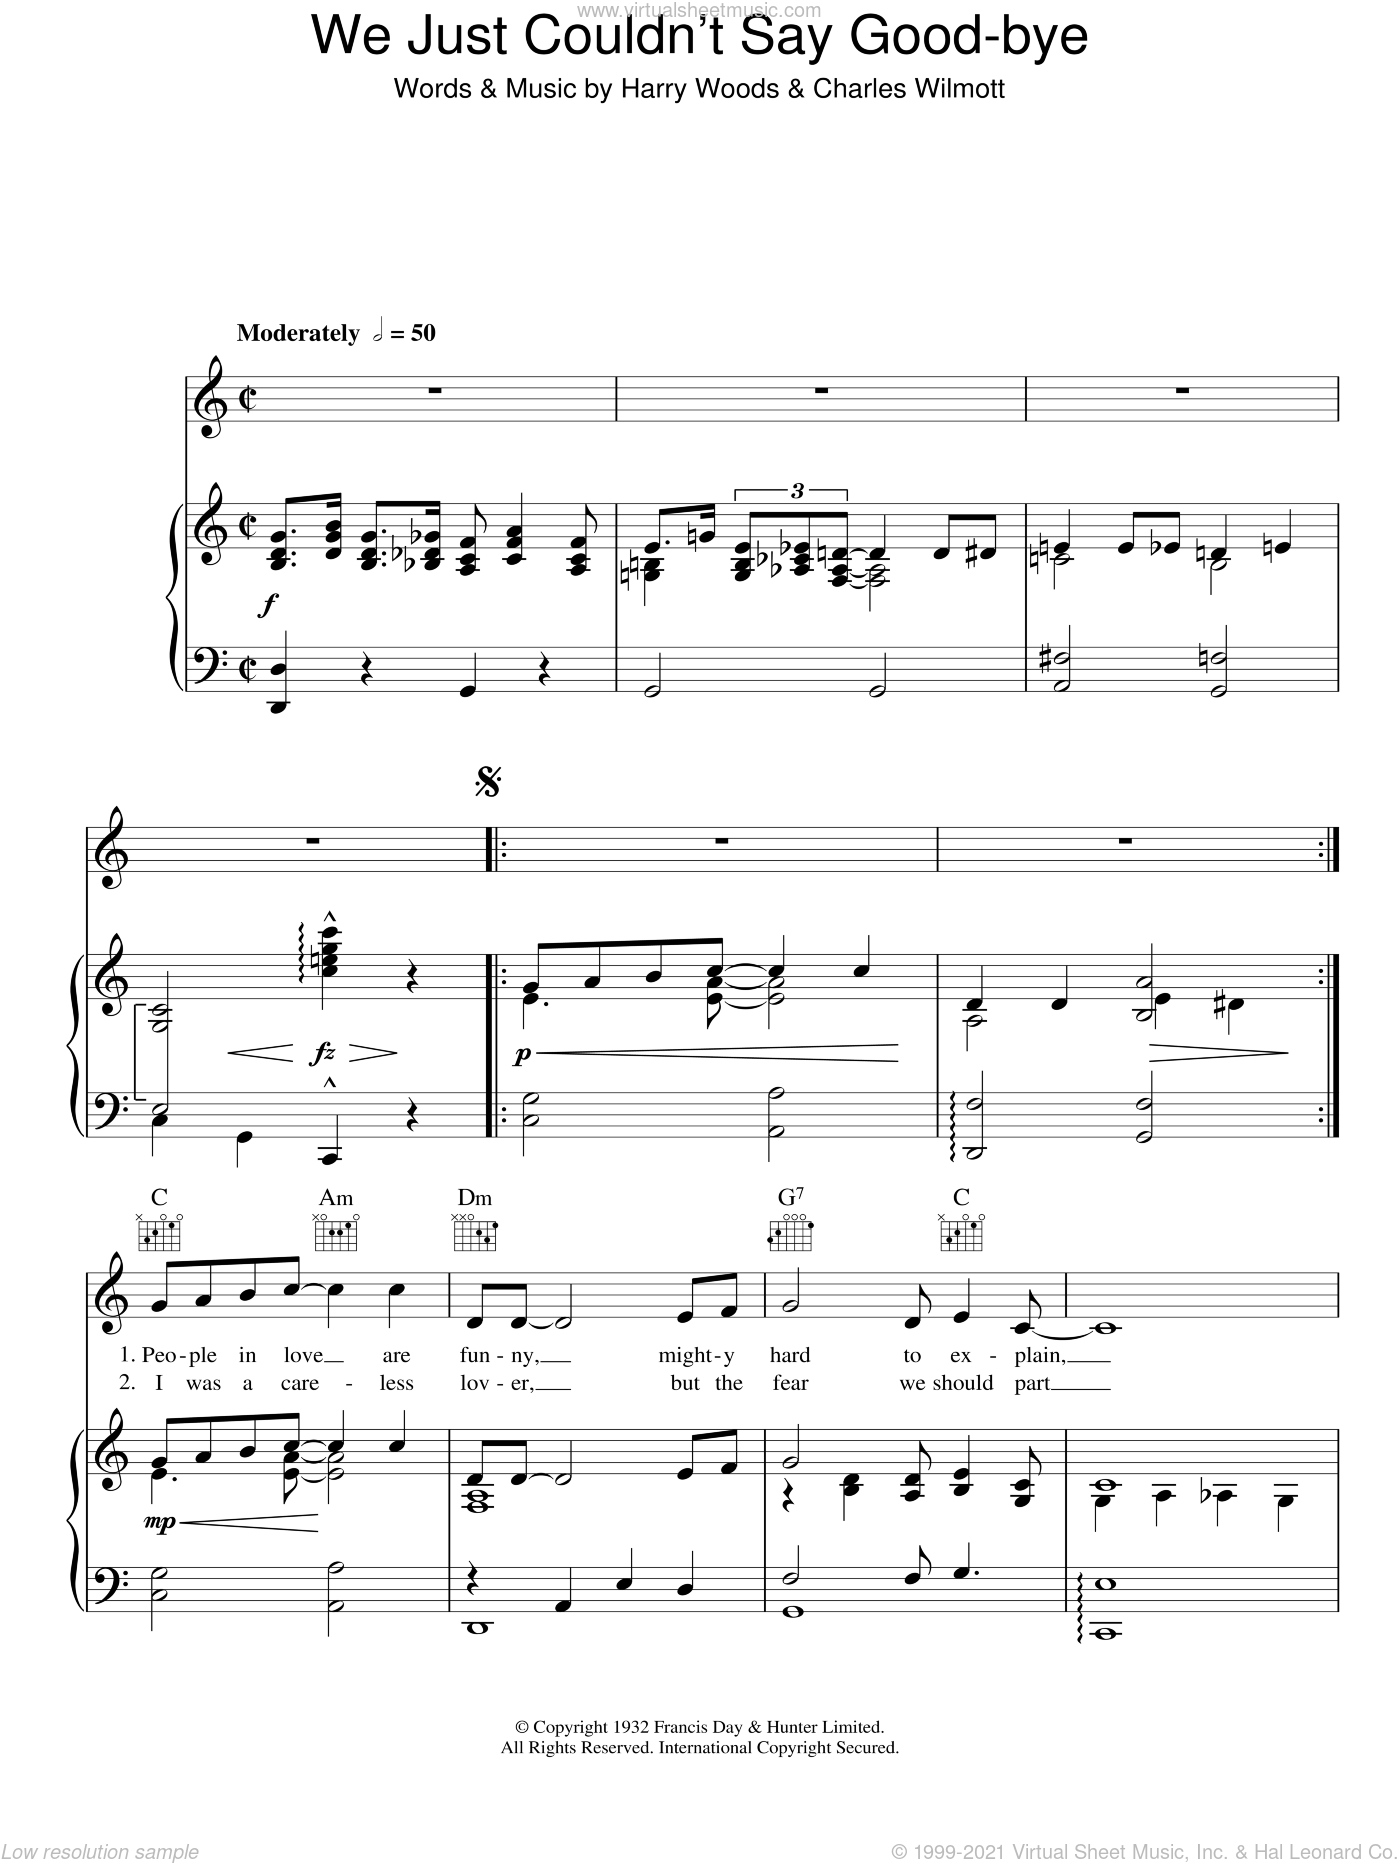 We Just Couldn't Say Goodbye sheet music for voice, piano or guitar by Patti Page and Harry Woods. Score Image Preview.